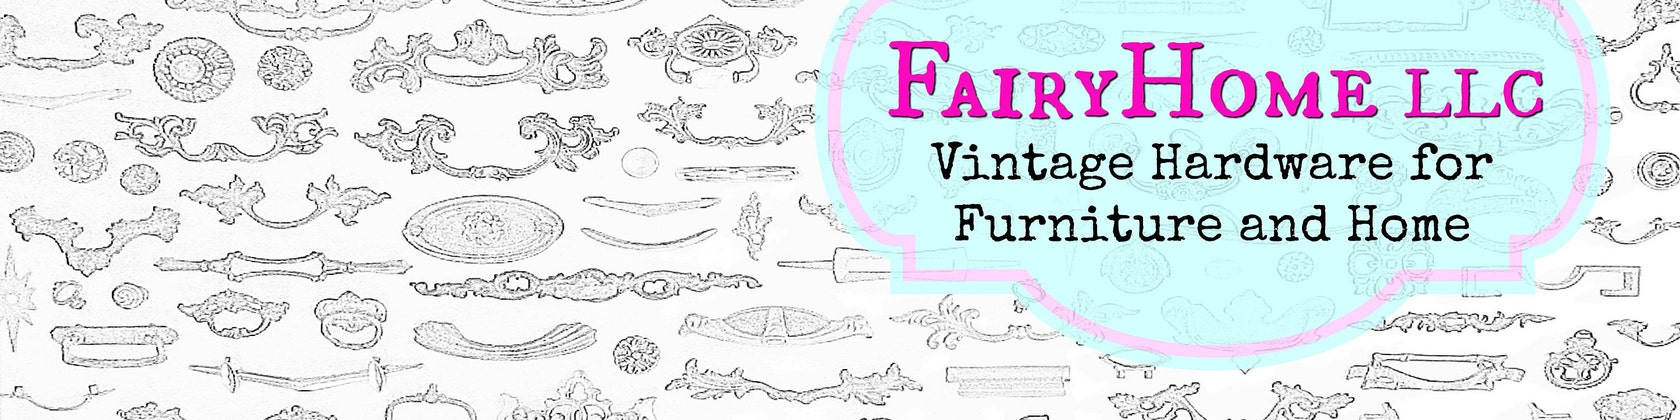 Fairyhome. Vintage Hardware For Furniture And Home